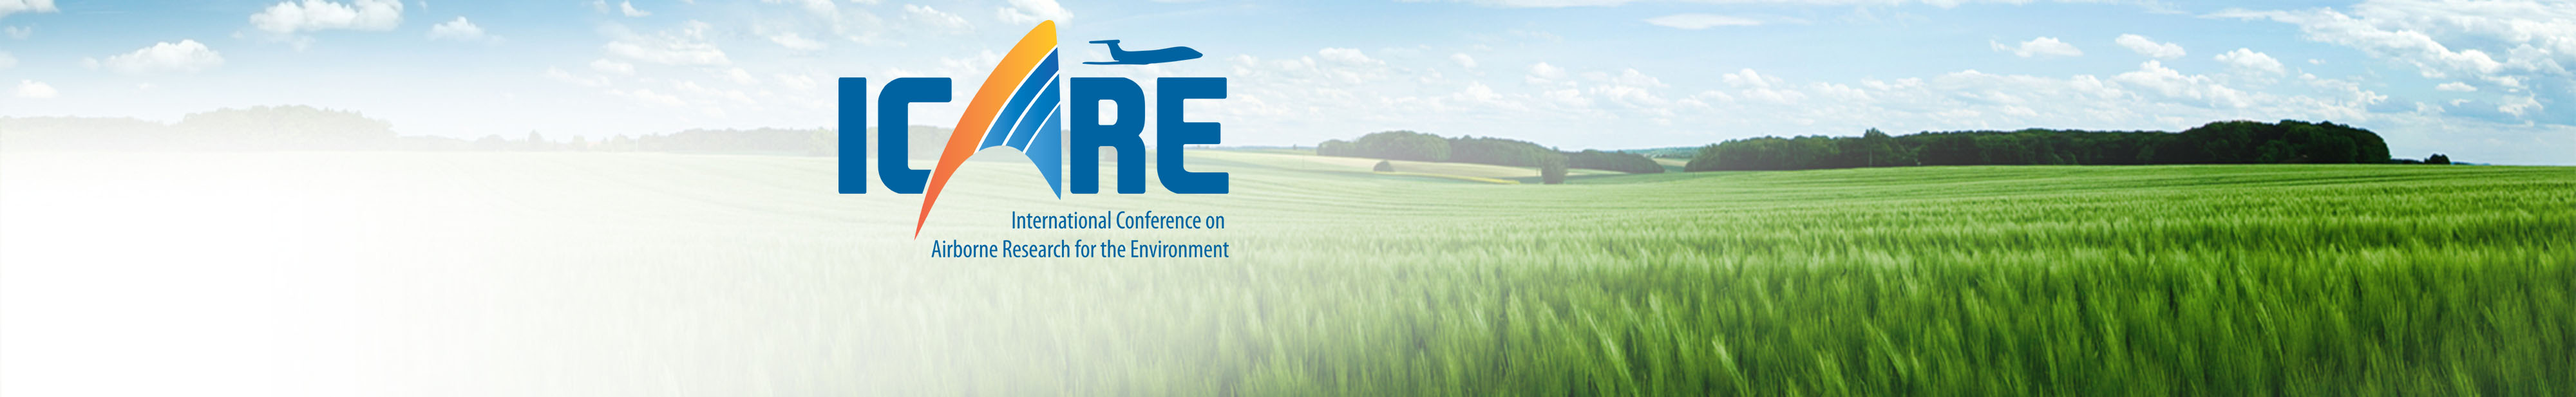 2nd International Conference on Airborne Research for the Environment